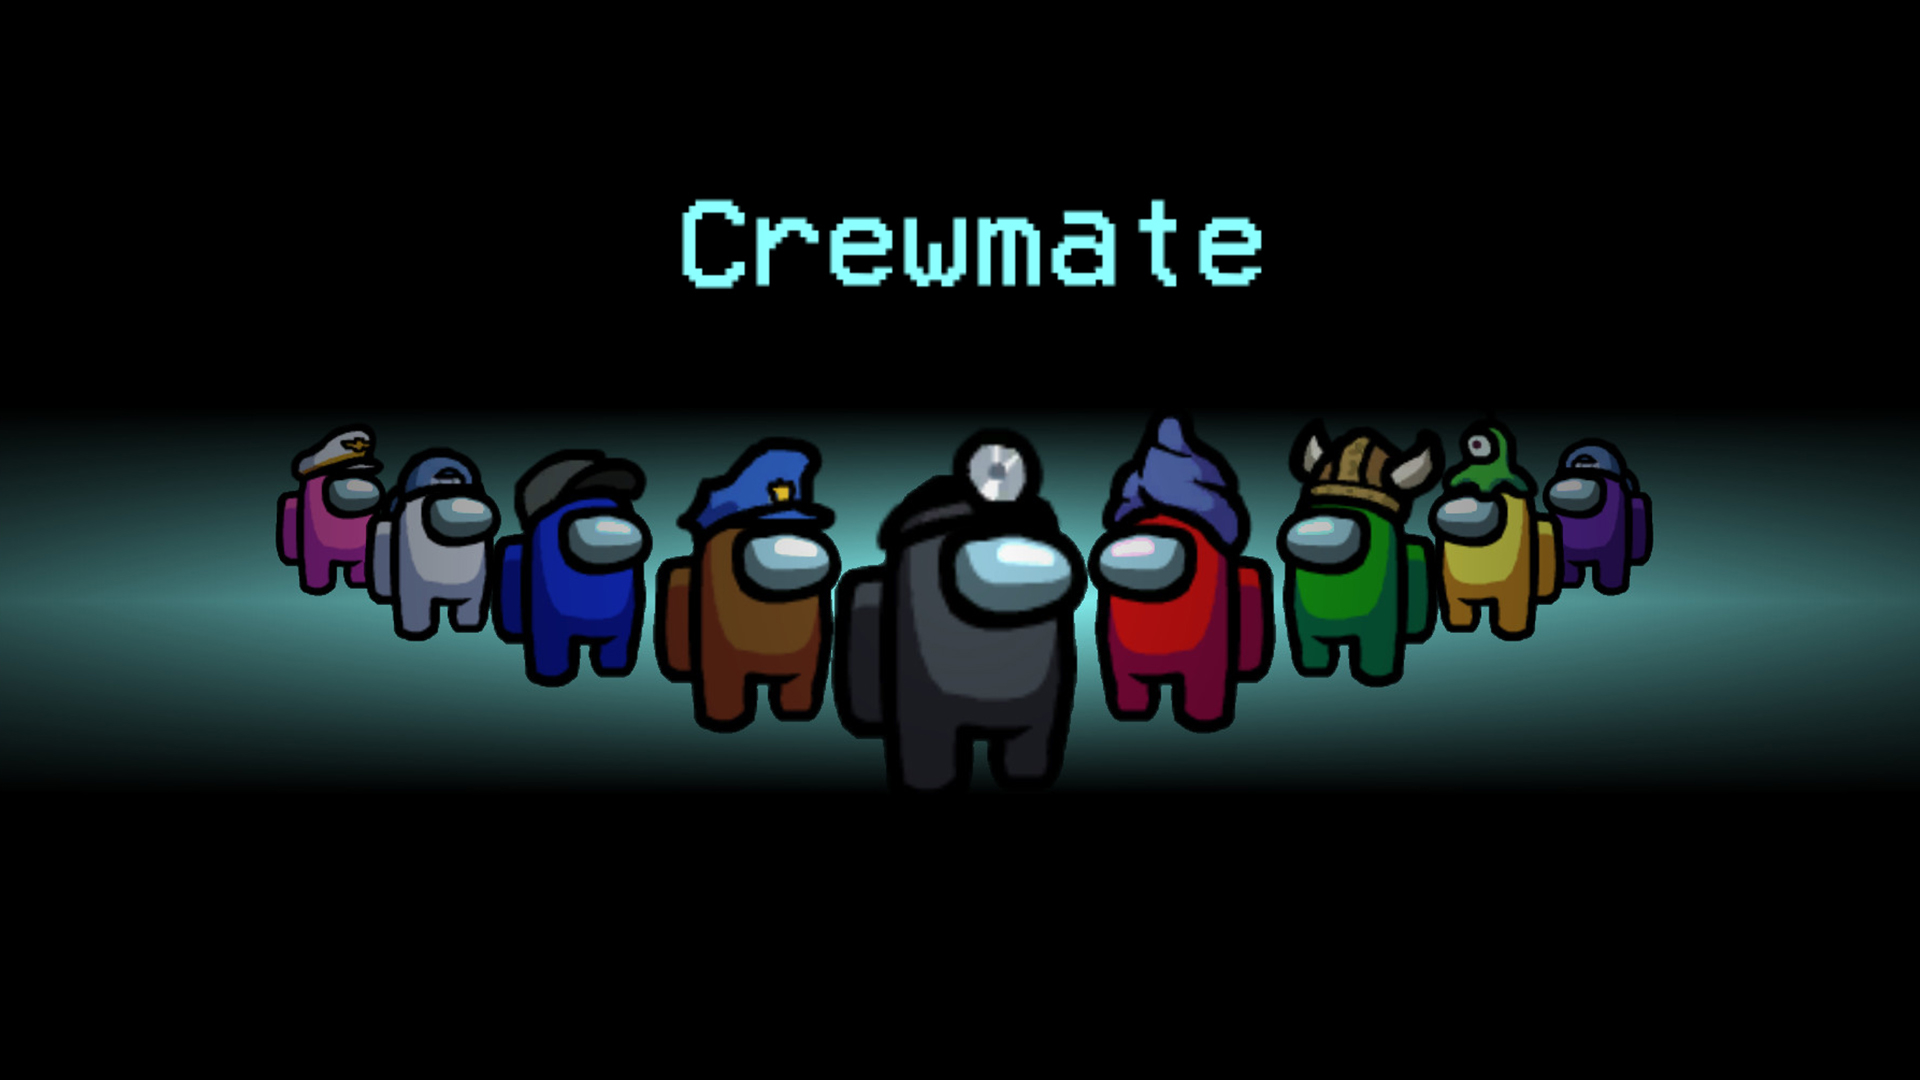 Crewmate Among Us Wallpaper HD Games 4K Wallpapers Images 1920x1080